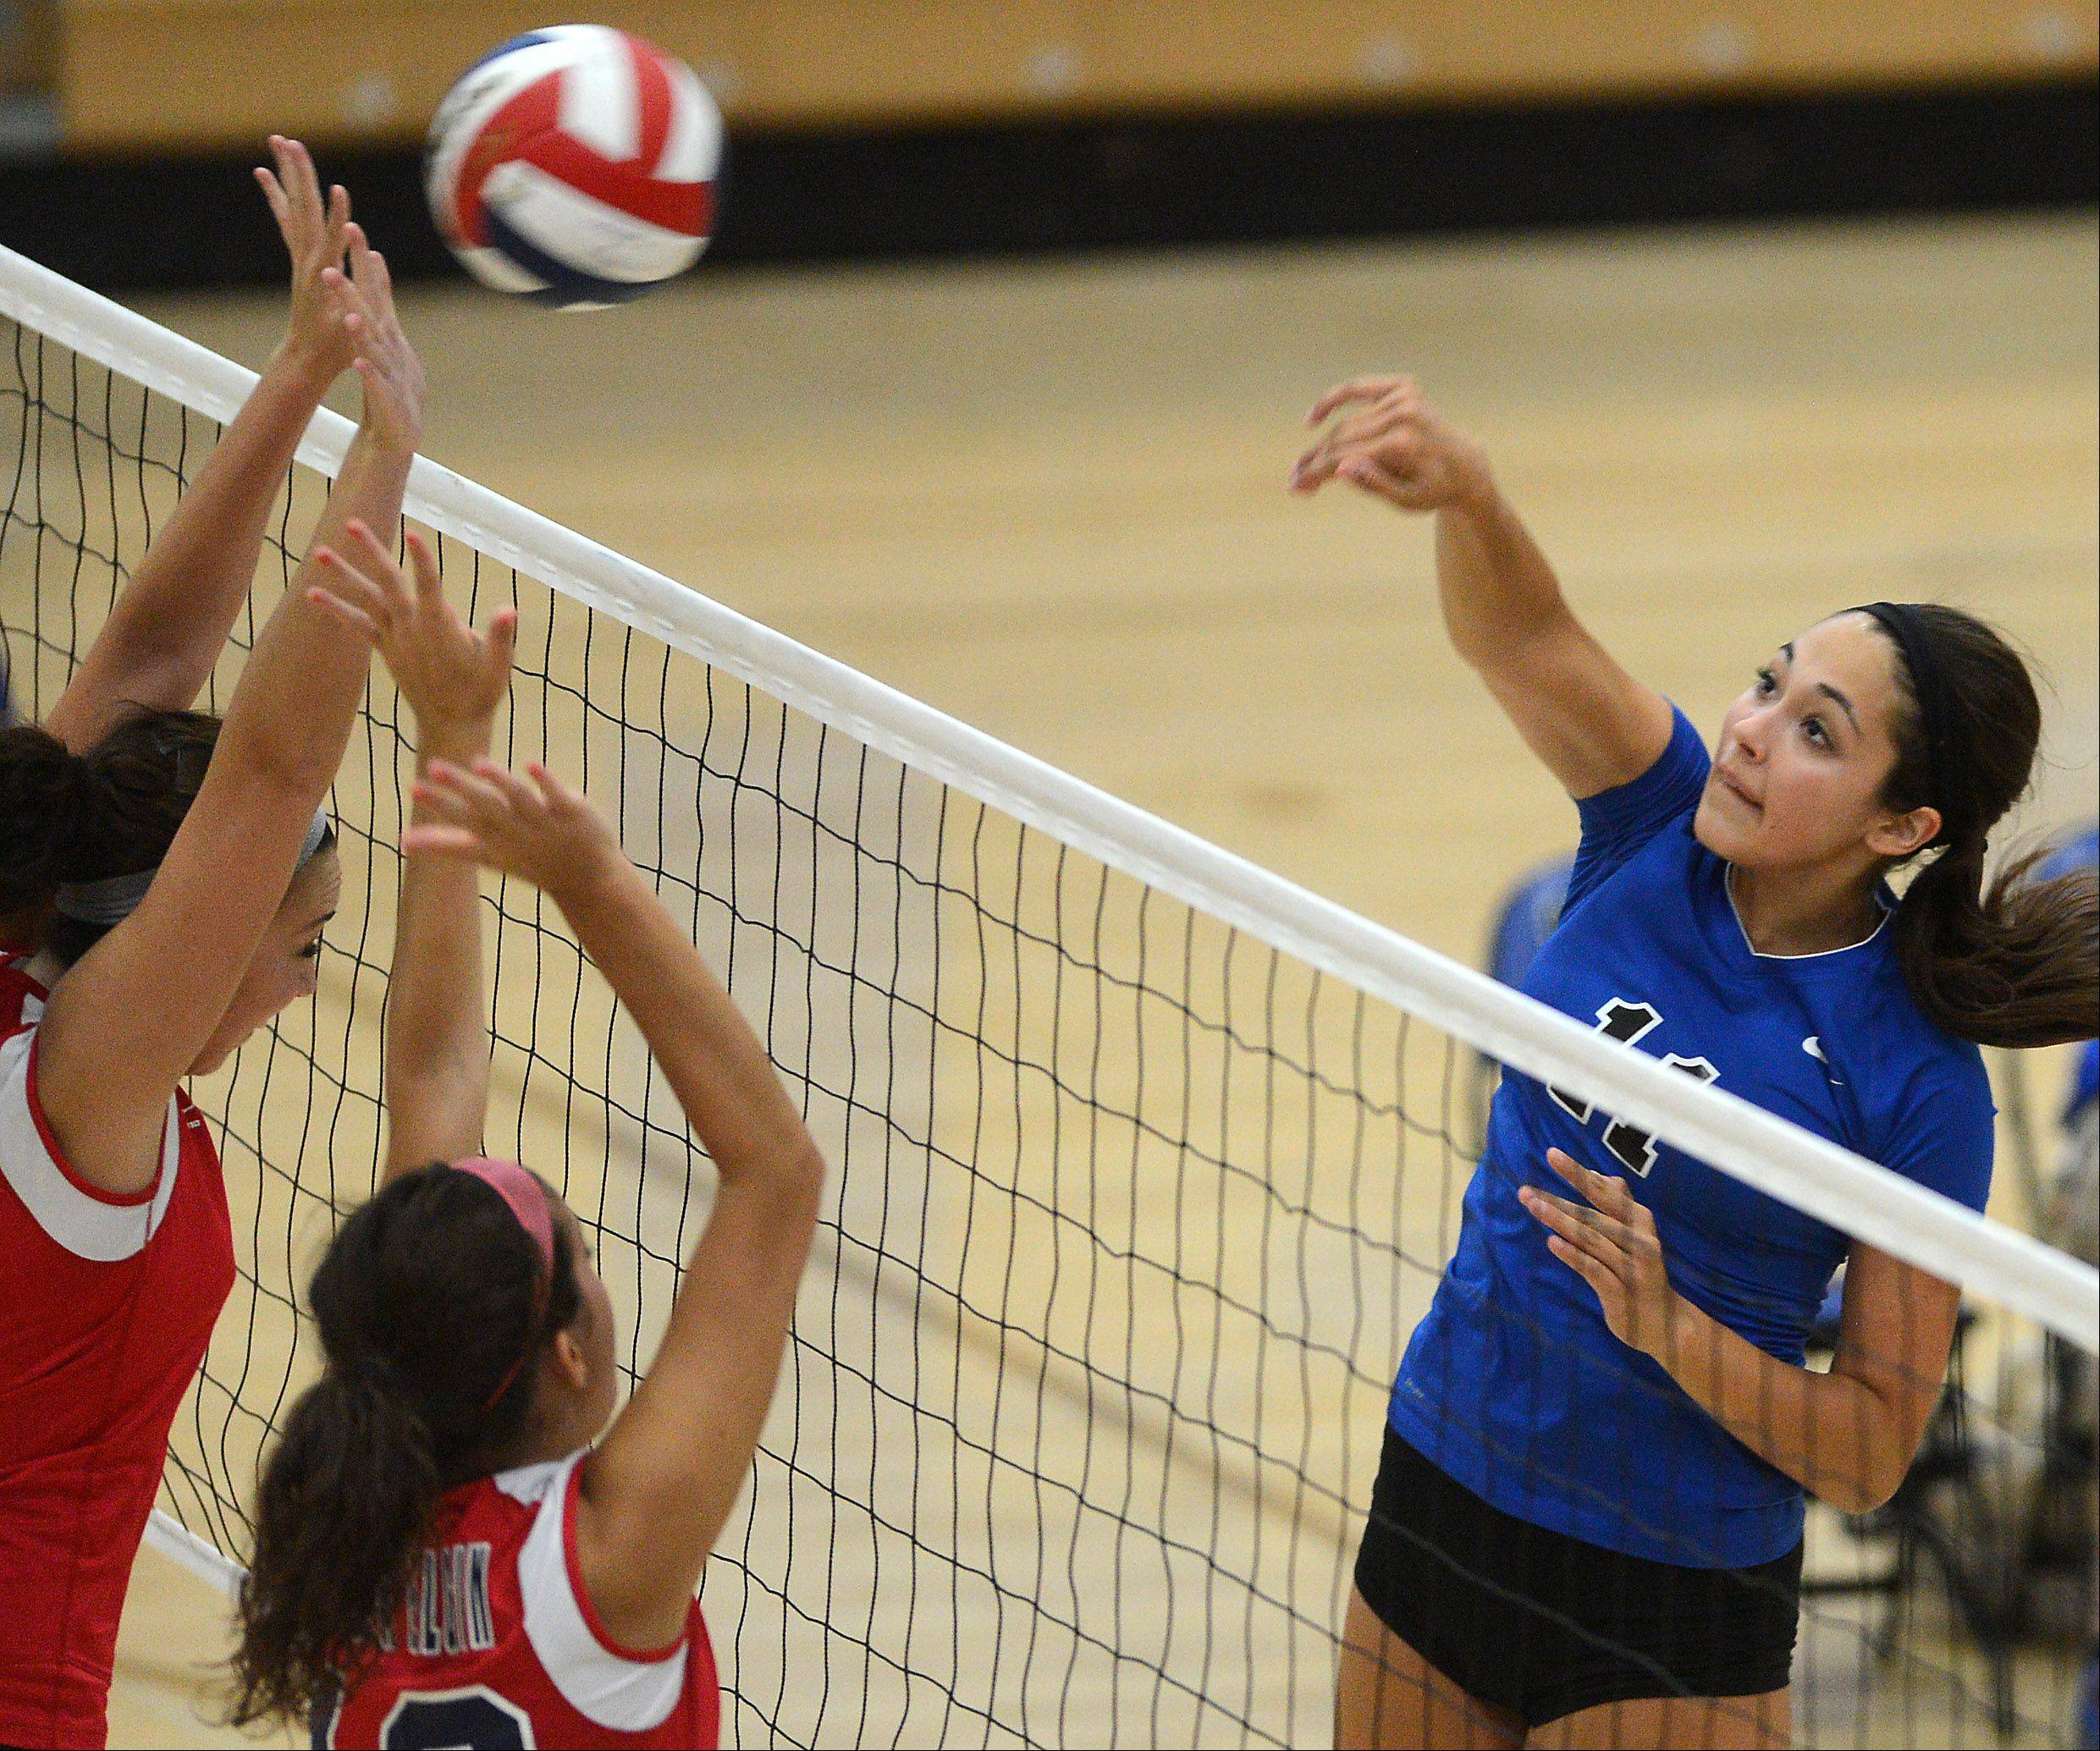 St. Charles North's Sophia DuVall records a kill as she spikes it past a pair of South Elgin blockers during Thursday's game in St. Charles.